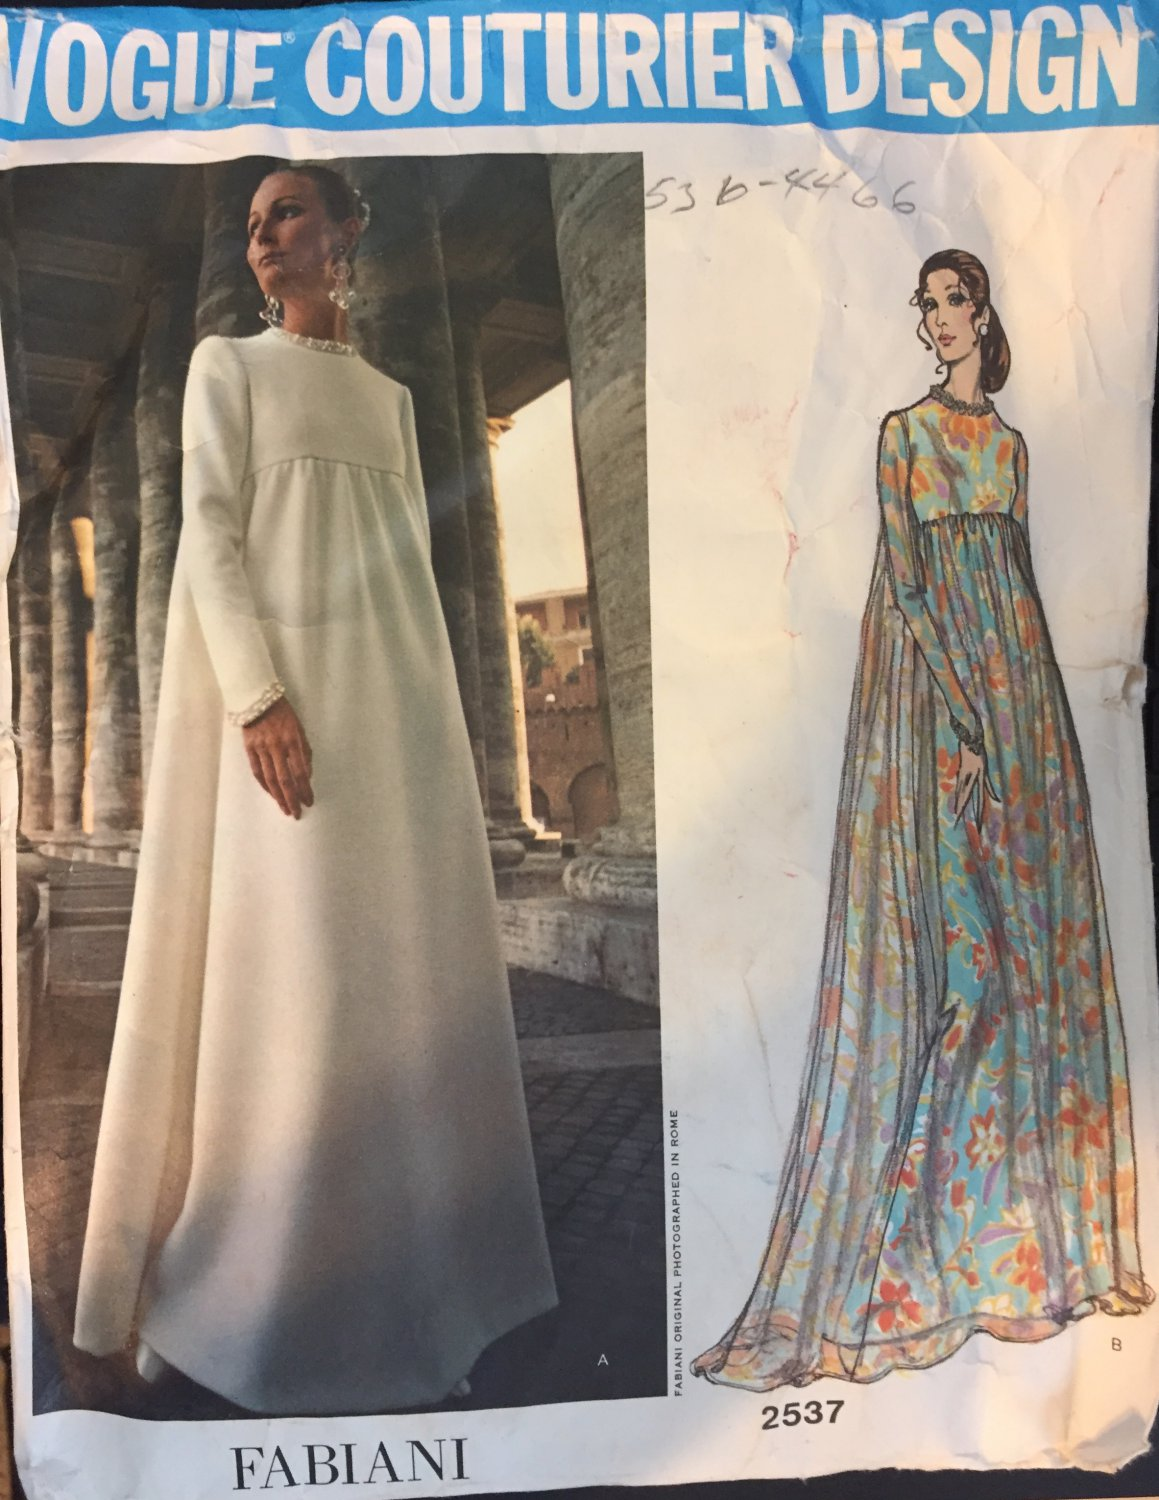 Vintage 1970s Vogue Couturier Pattern Fabiani 2537 Evening  gown Size 10